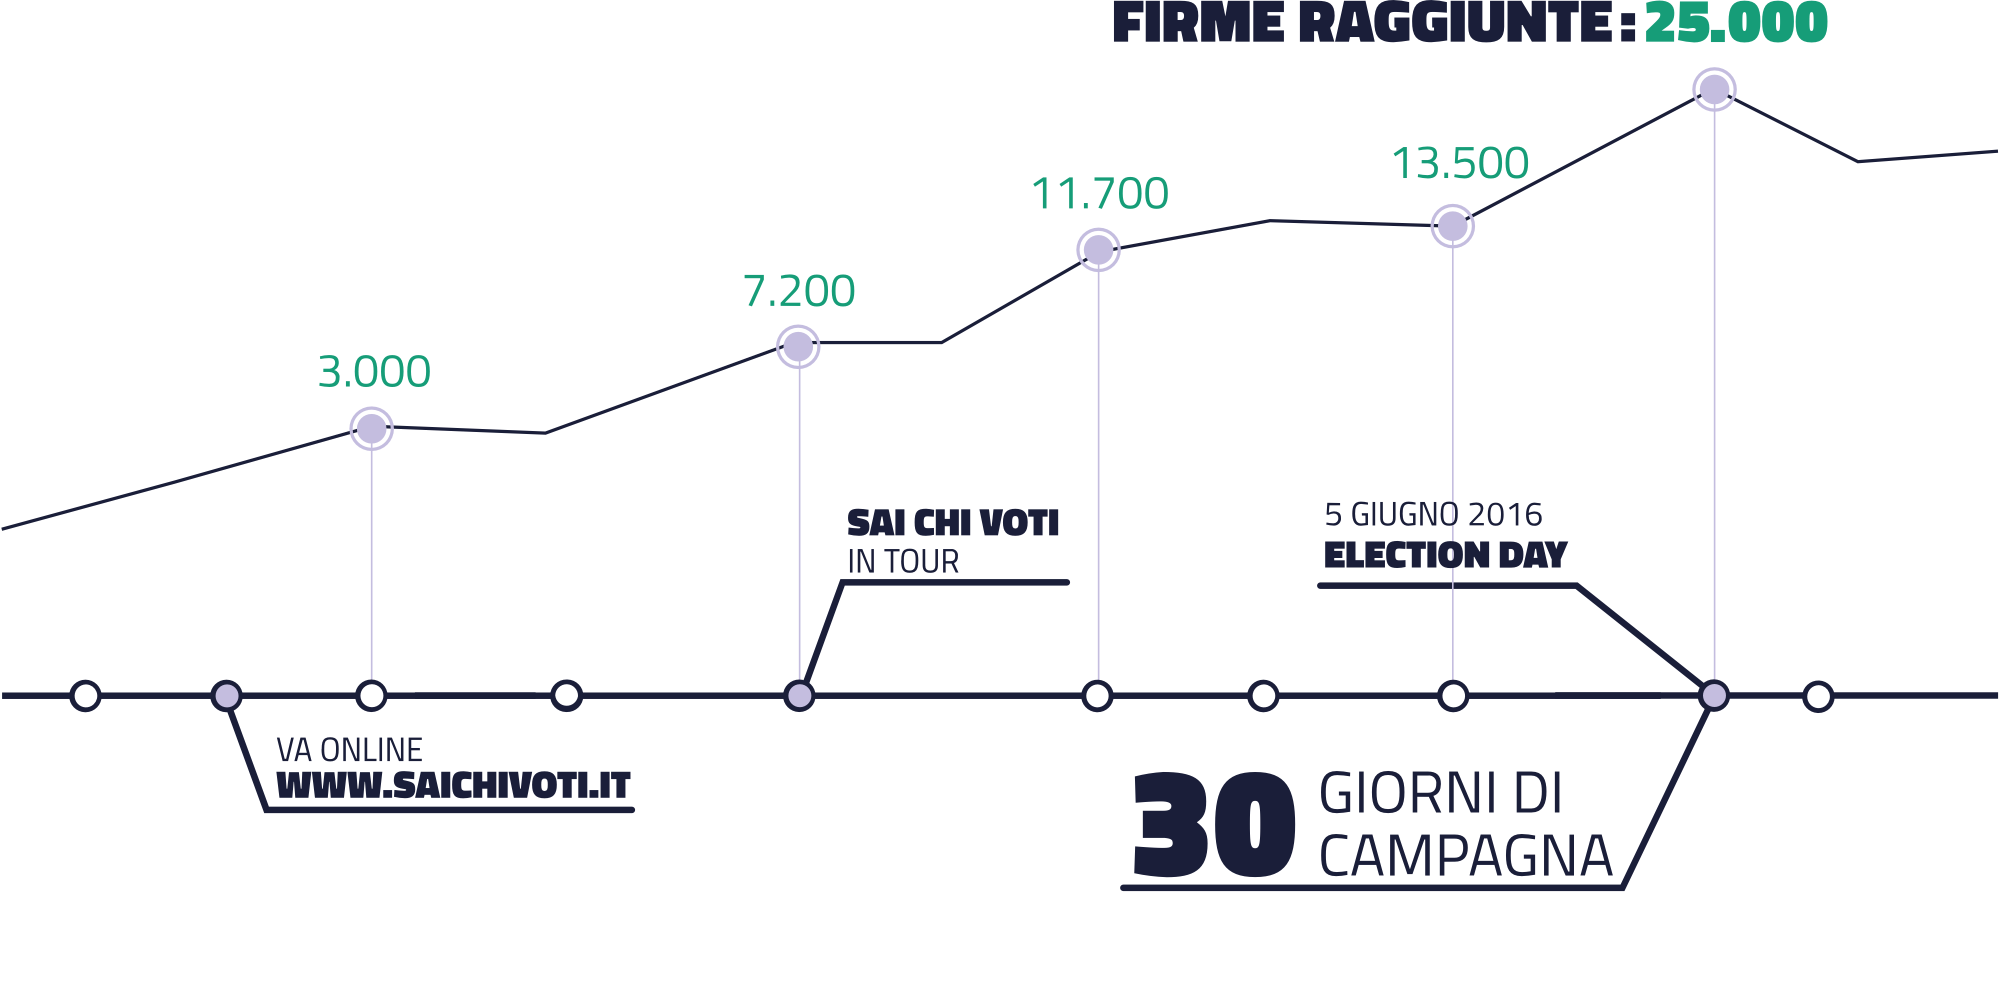 image of the campaign impact